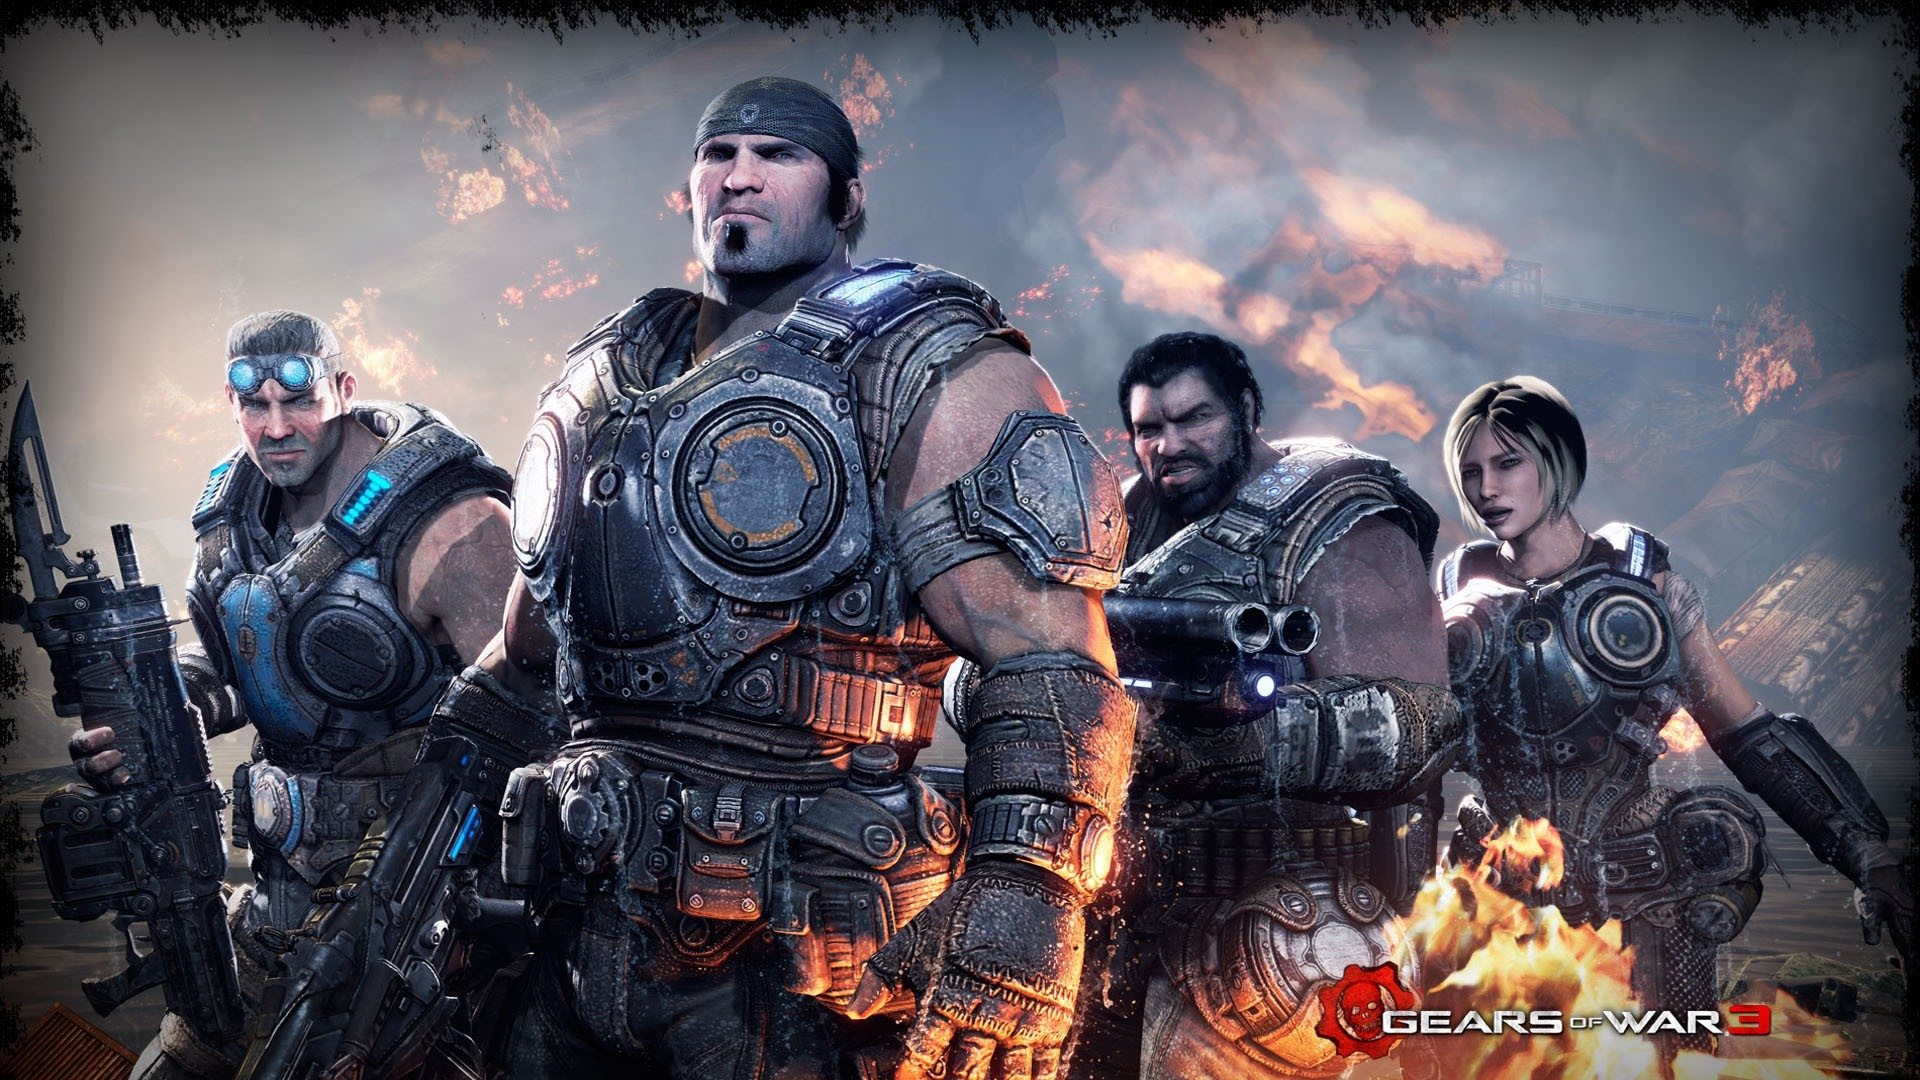 Download Wallpaper 1920x1080 Gears Of War 3, Soldiers